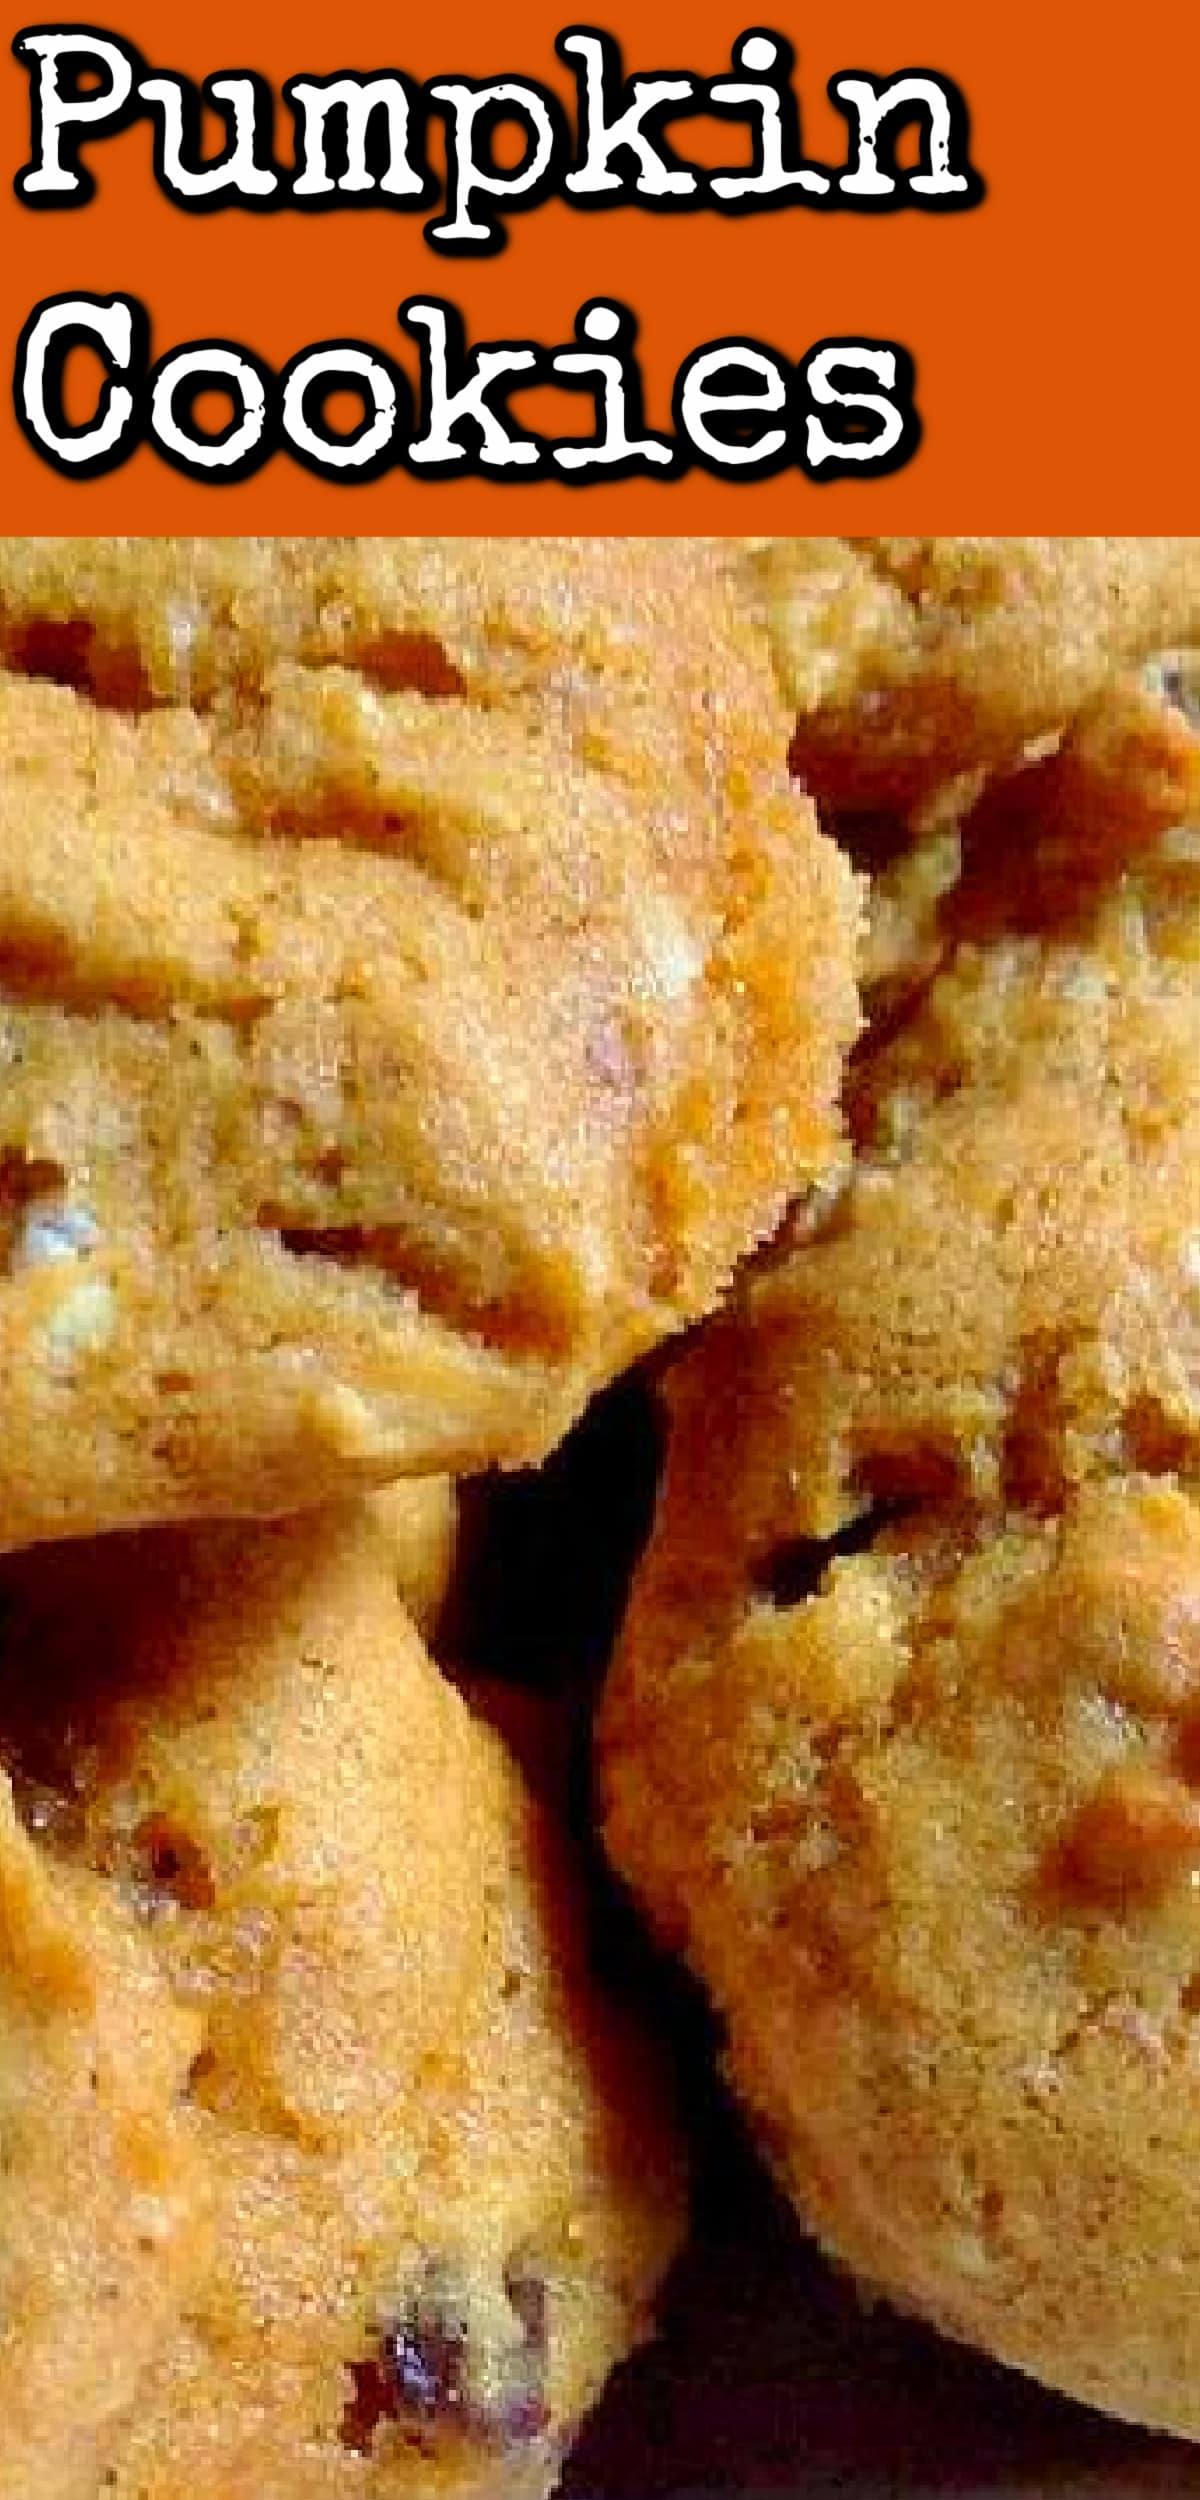 Pumpkin Cookies . Delicious cookies with pureed pumpkin and chocolate chips make for a popular snack with a cold glass of milk! Be sure you make up plenty!